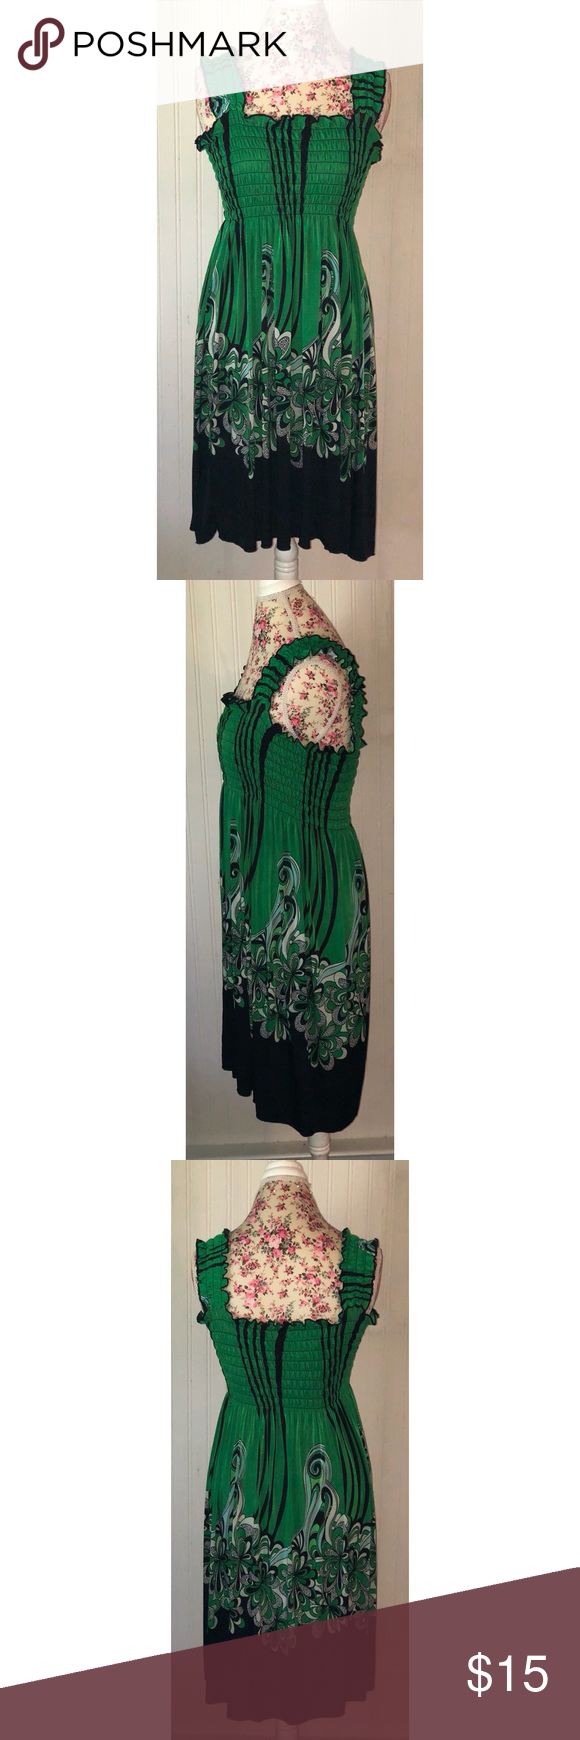 FC Green Paisley Sleeveless Short Sundress L Green paisley print dress from FC. Empire waist. Sleeveless with wide straps. Lots of stretch, very forgiving in bust and waist. Marked L/XL I would say it would fit a 12-16. Good condition.  (May) FC Dresses #shortsundress